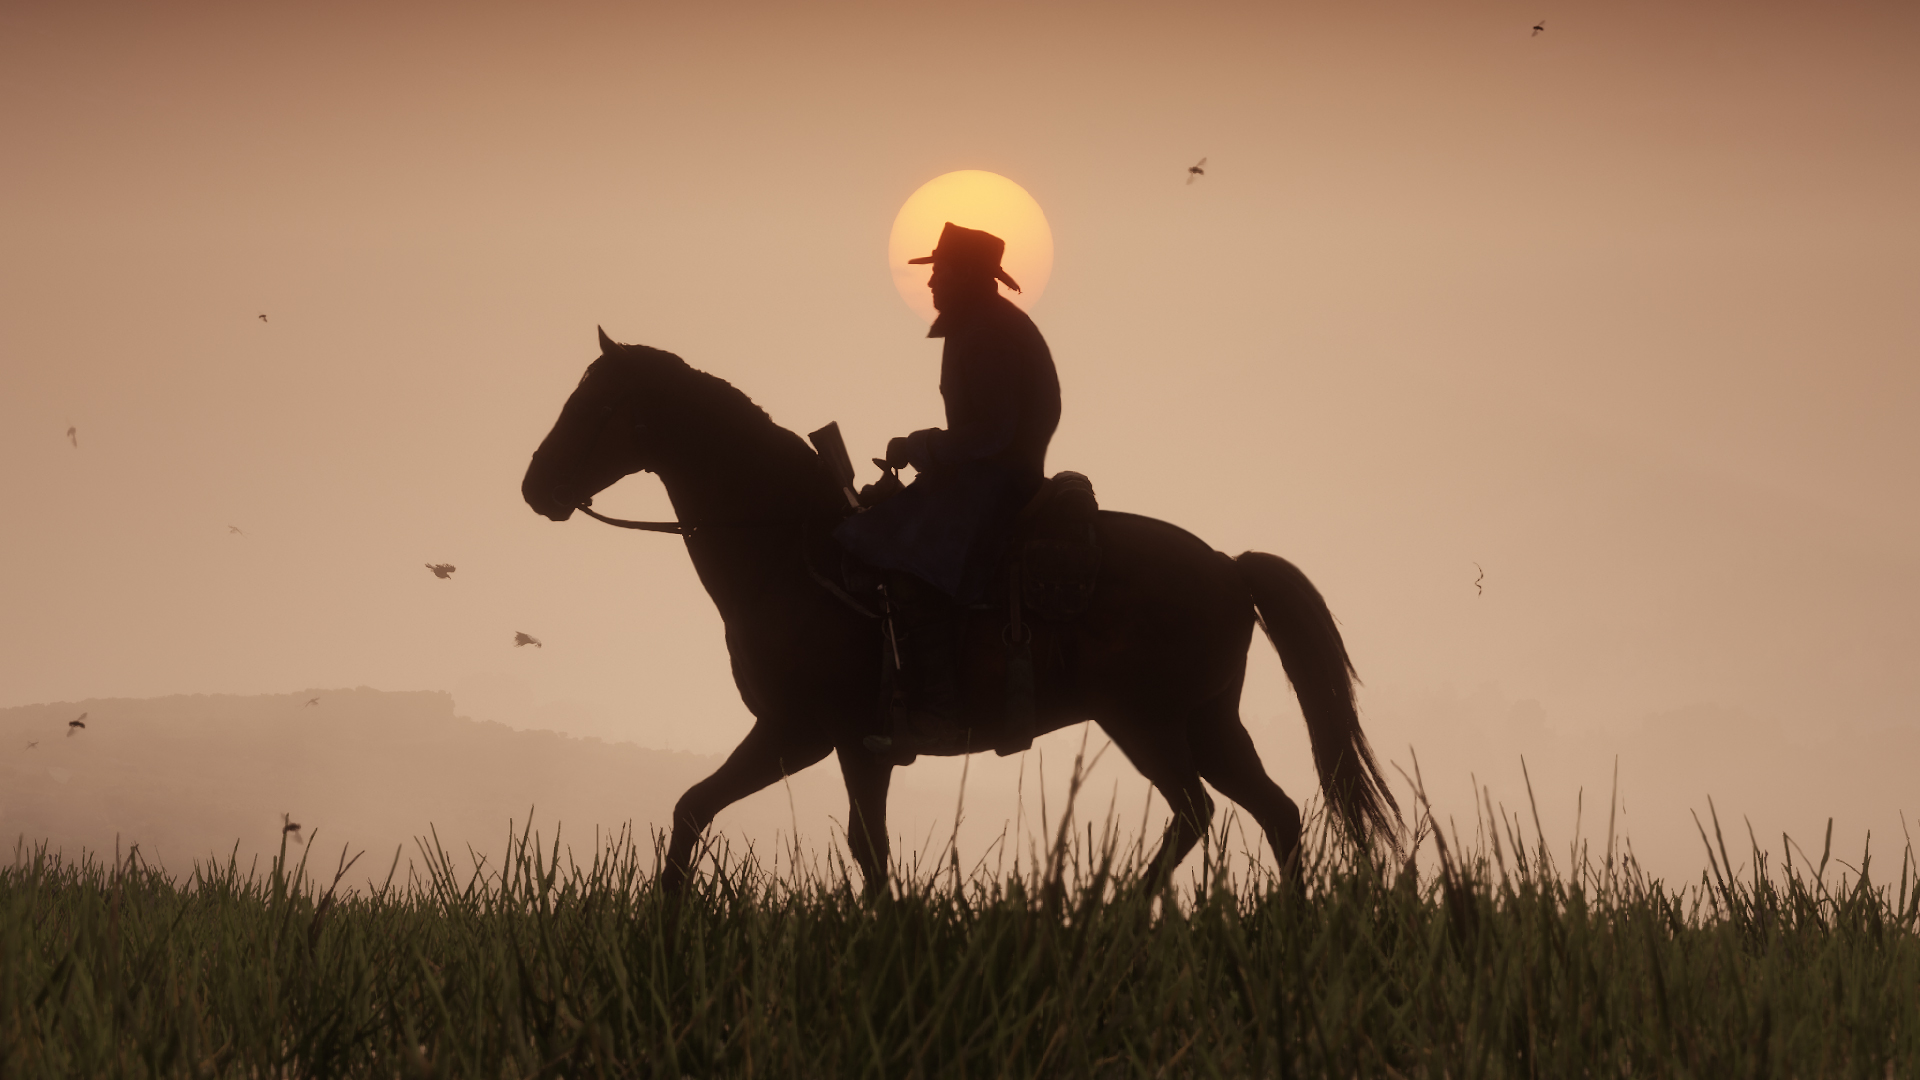 Red Dead Redemption 2 Rockstar Games New York Times